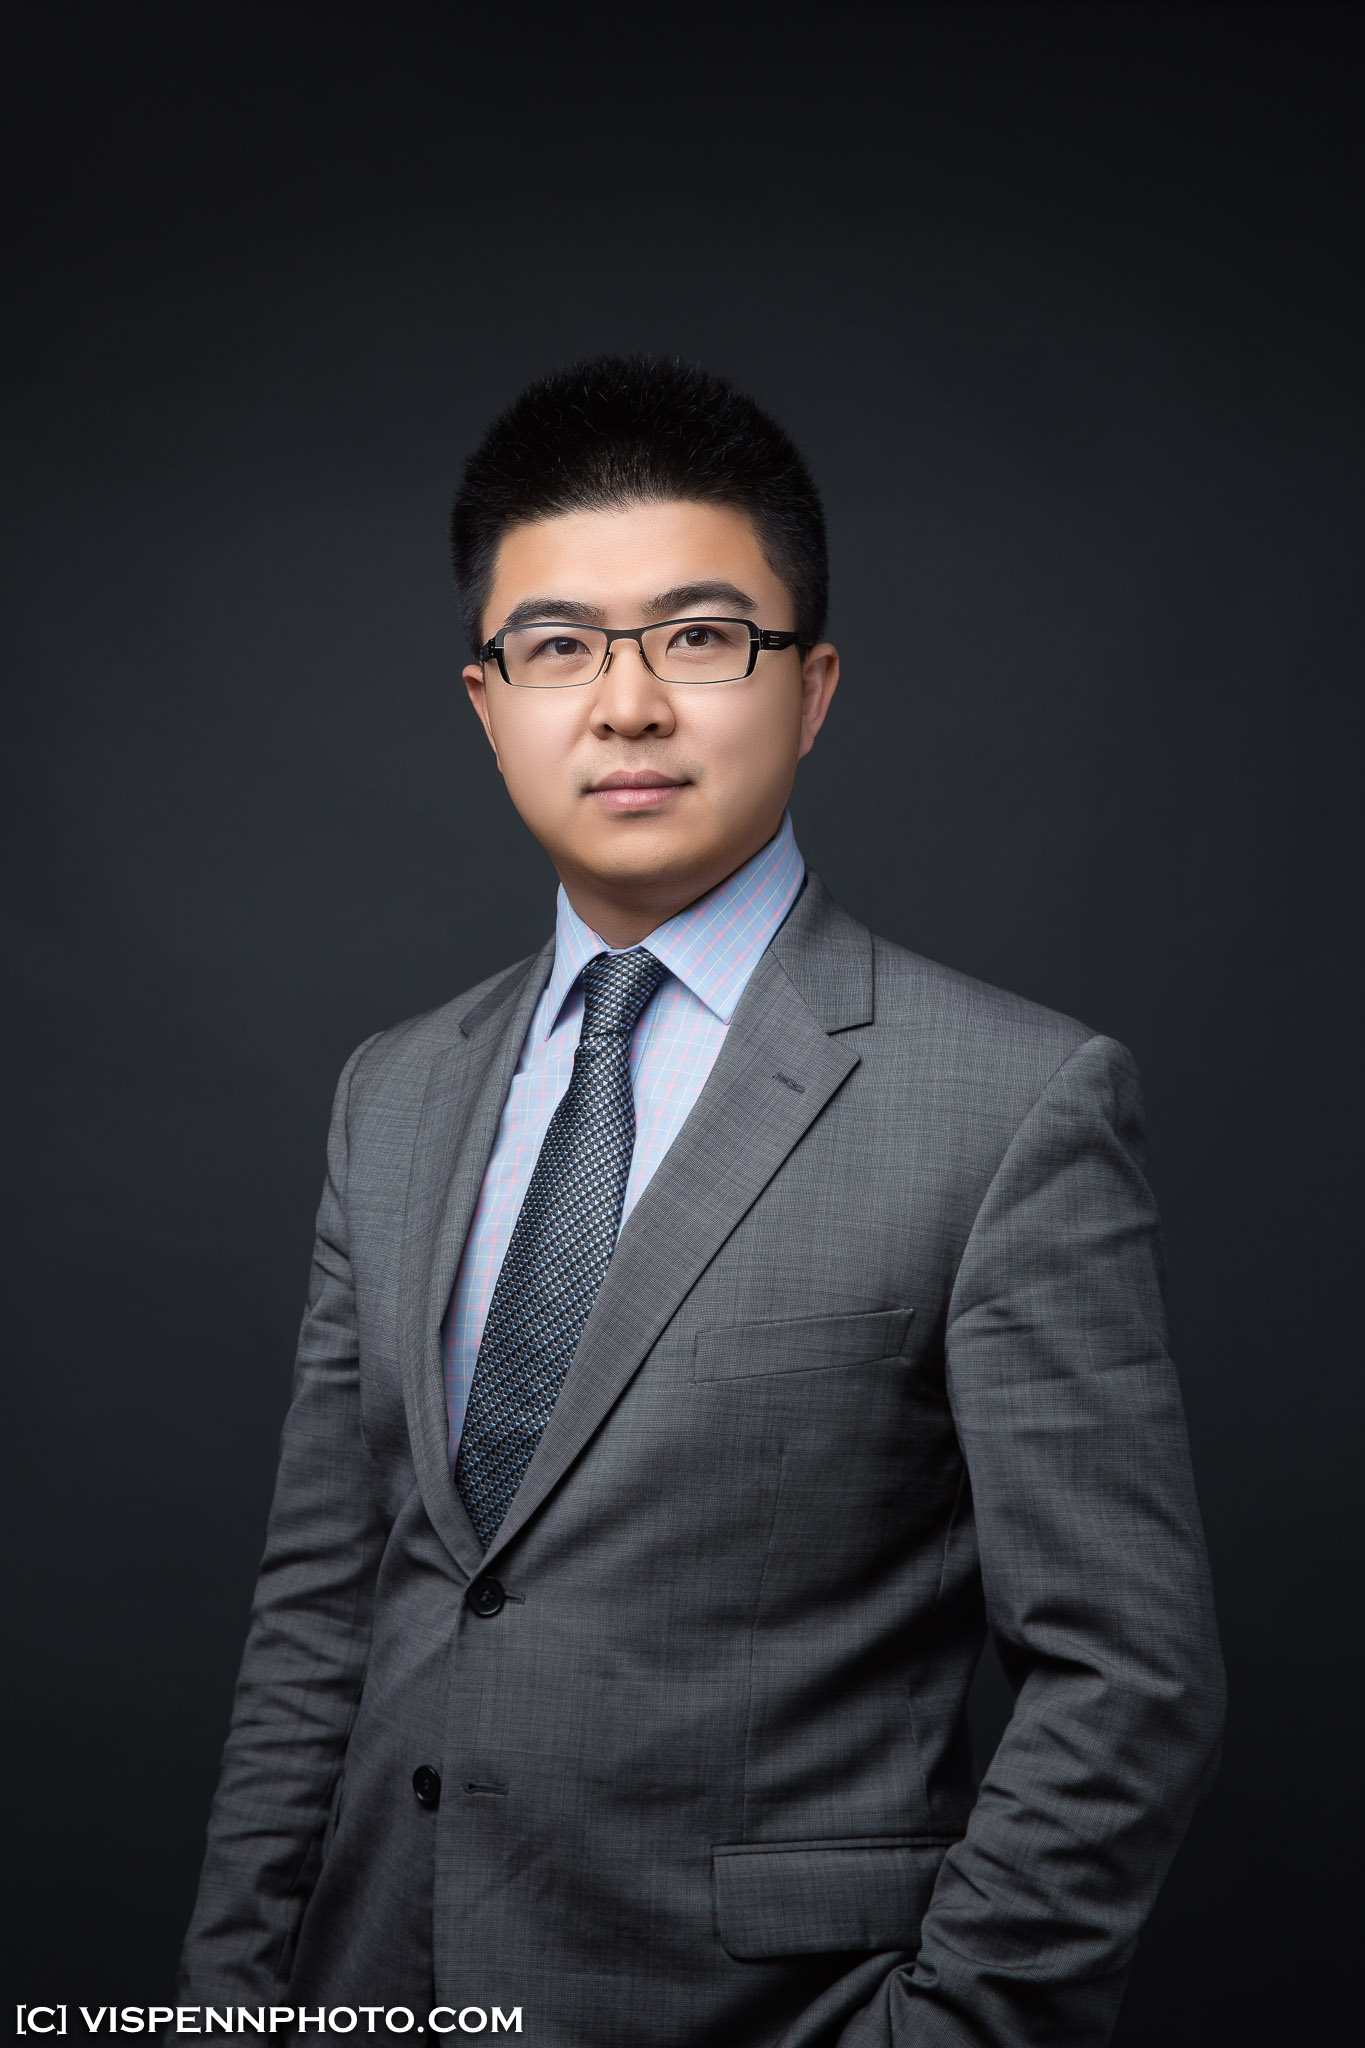 Headshot Melbourne Business Corporate Portraits VISPENN 墨尔本 商务 肖像工作照 团队 形象照 LinkedIn 头像 5DB 3191